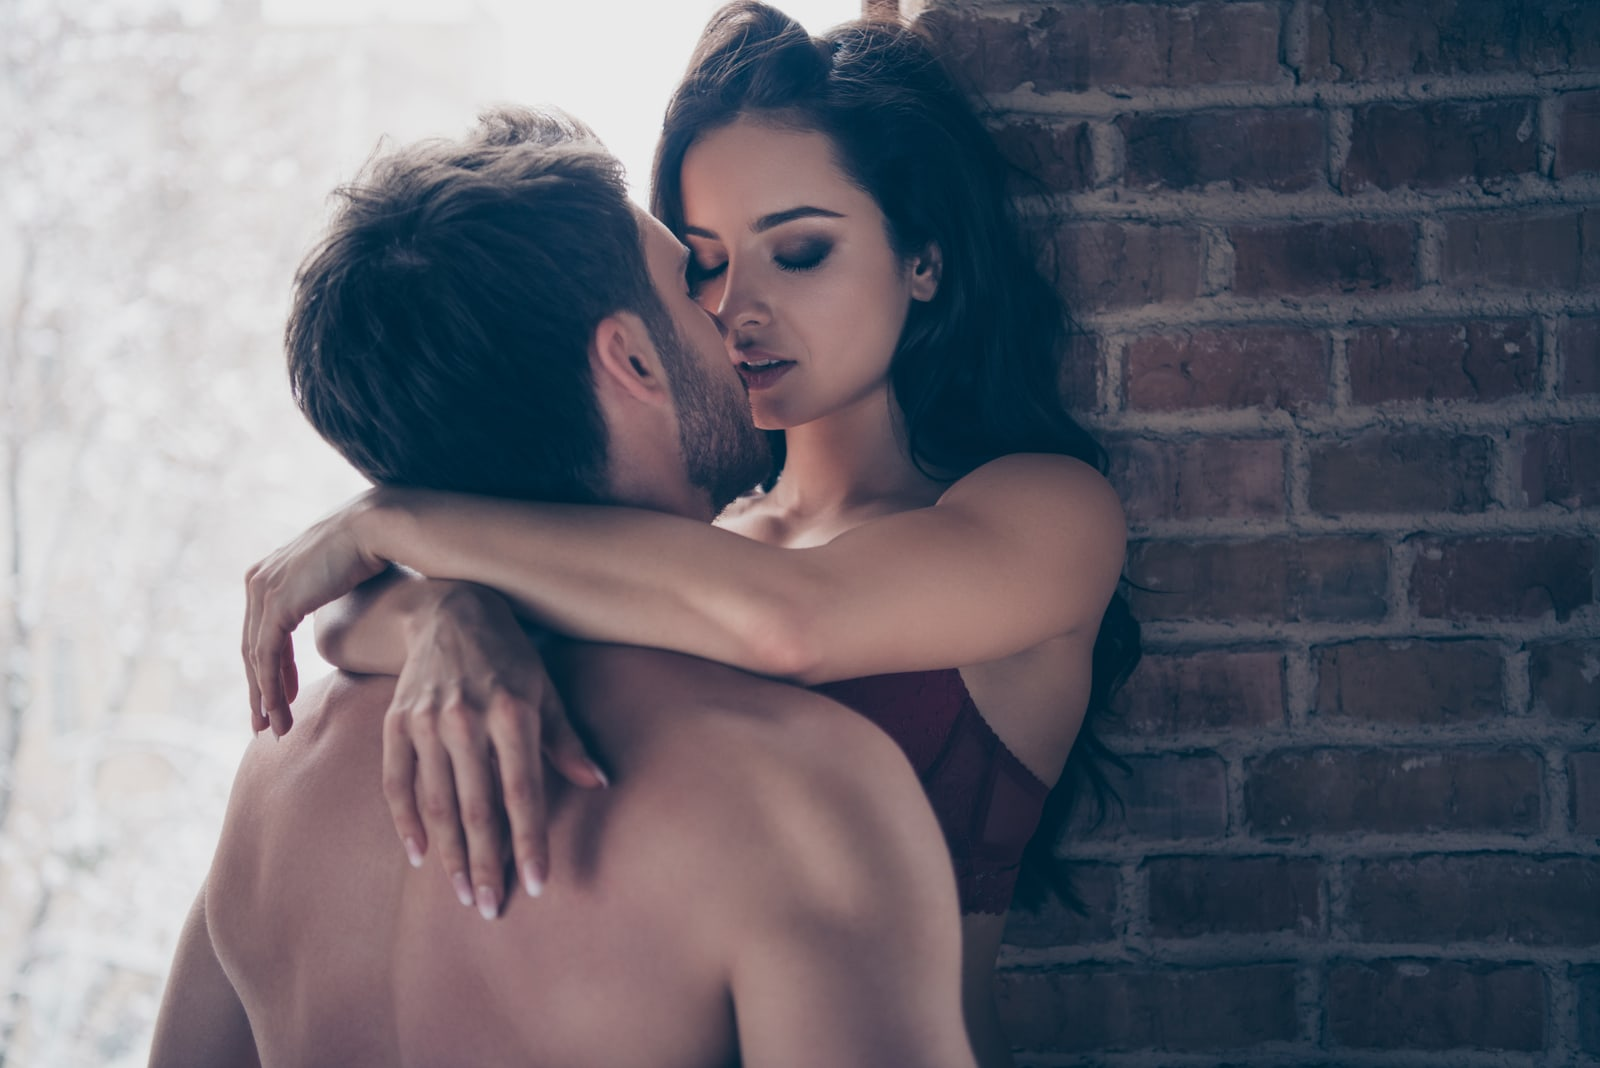 6 Traits Of Men Who Give Women Mind-Blowing Orgasms